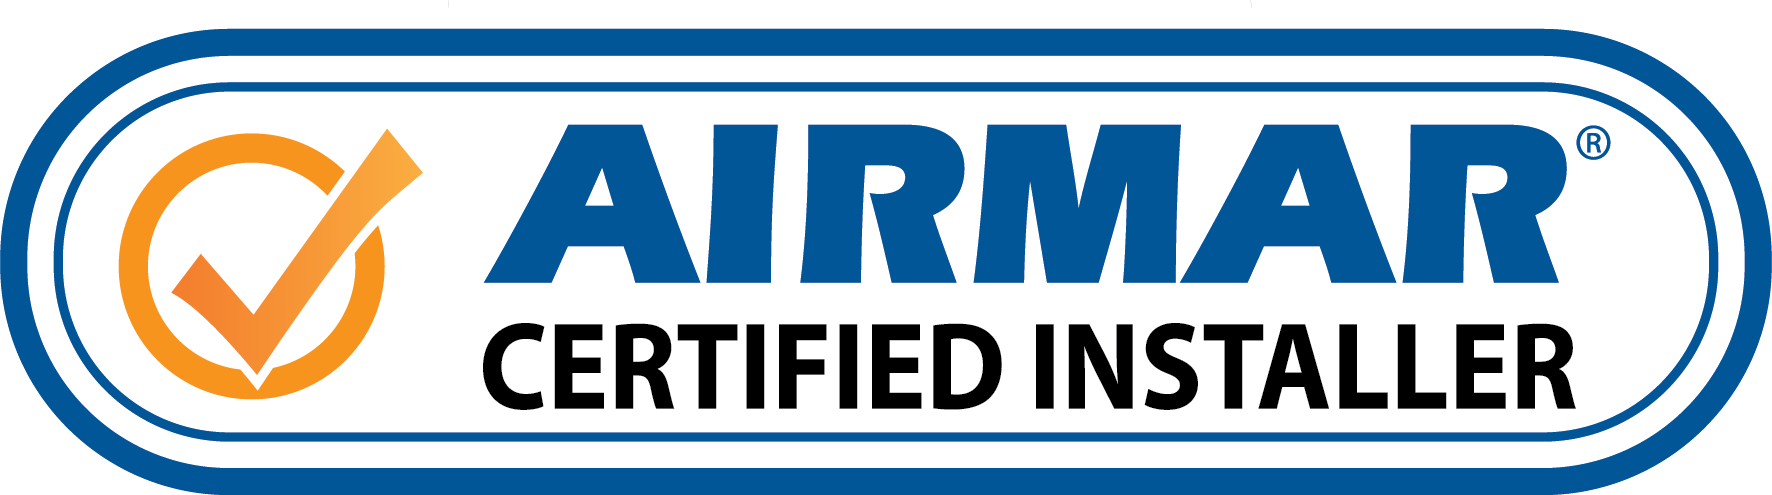 airmar-certified-installer.png